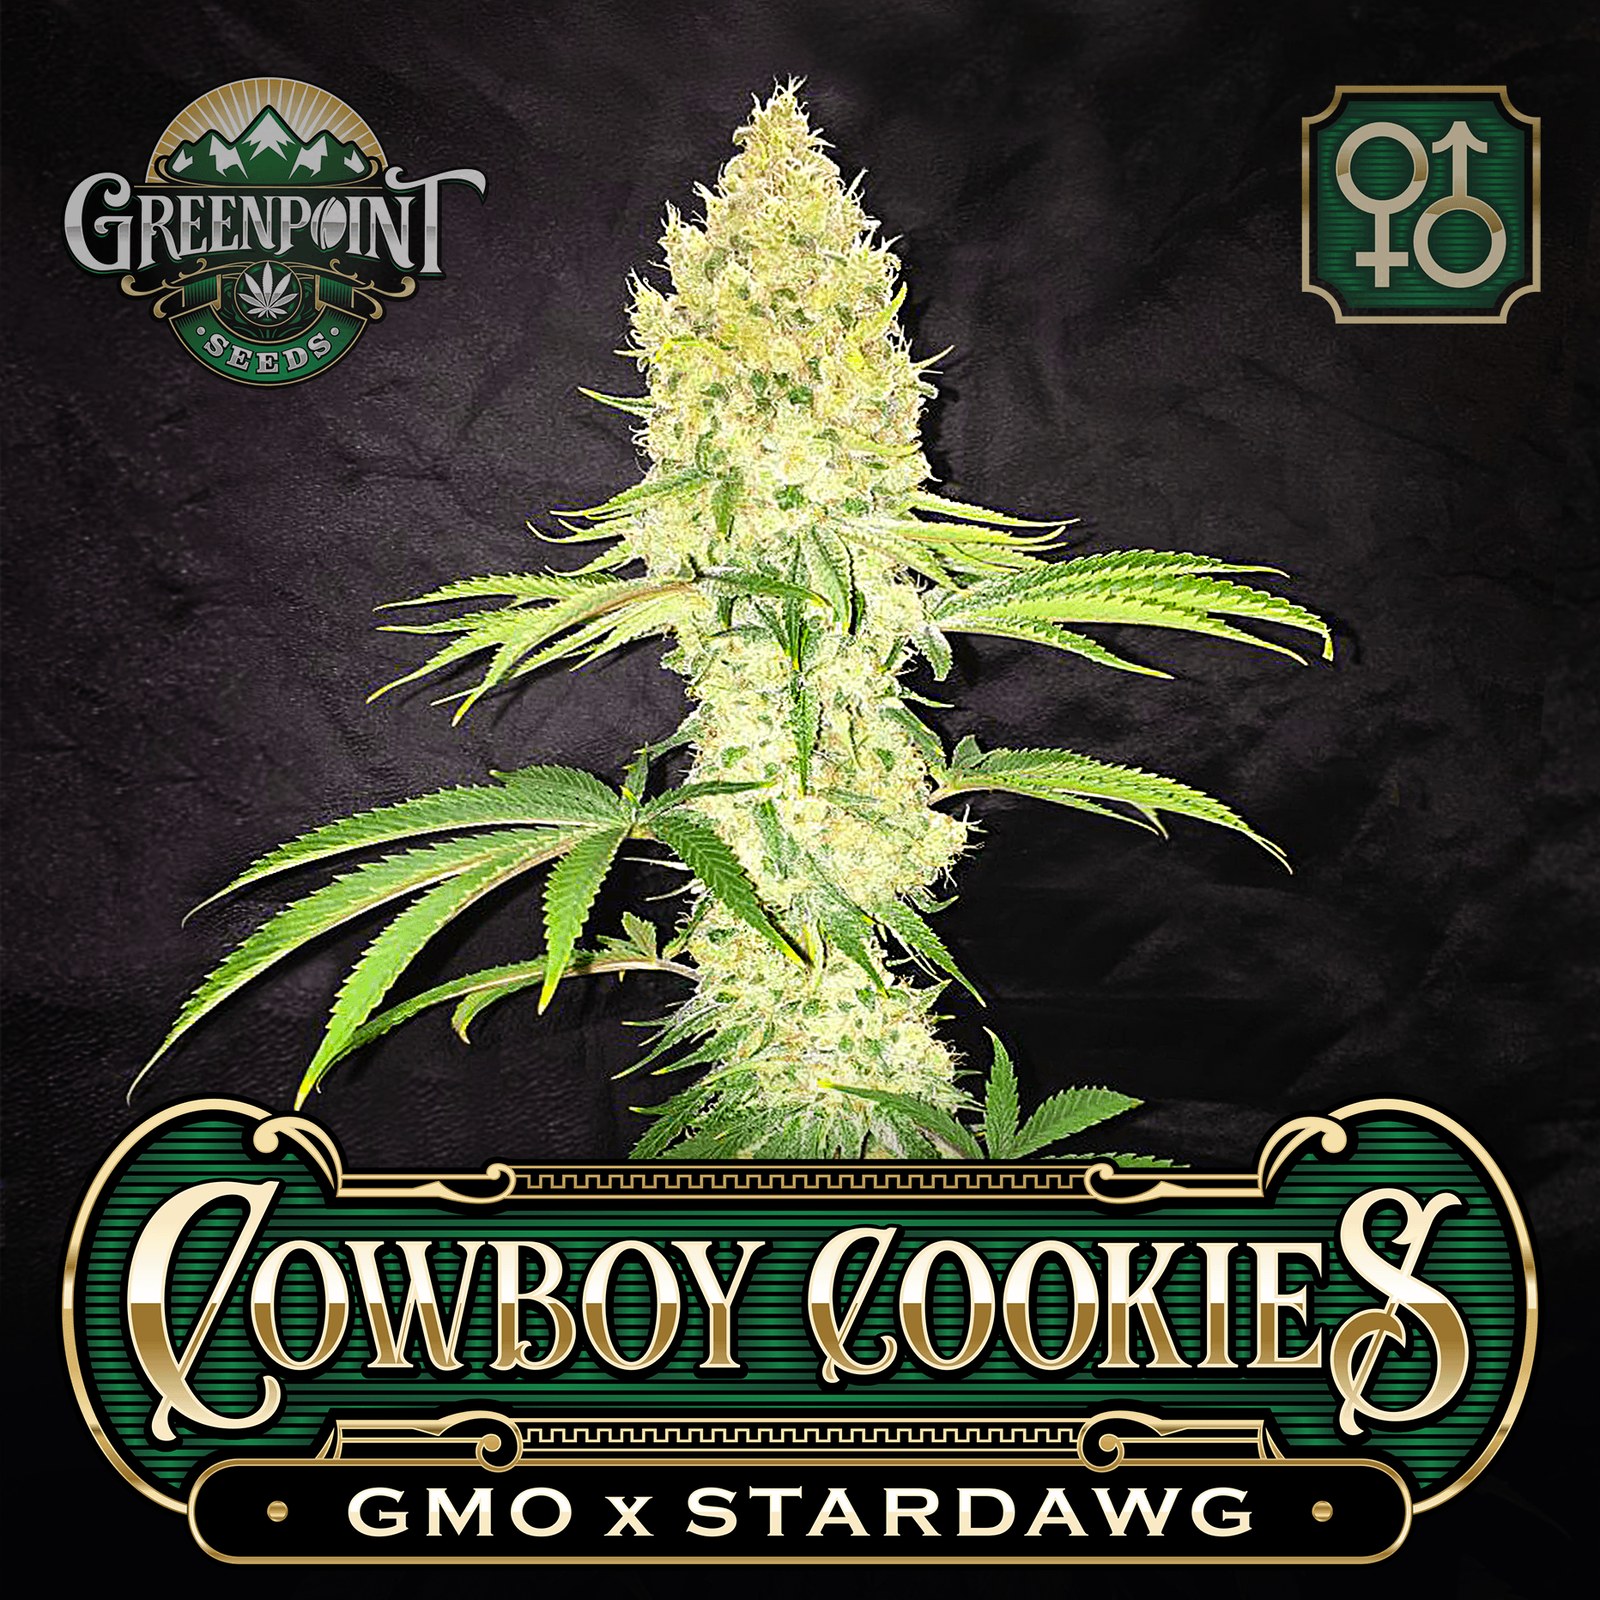 cowboy-cookies-gmo-stardawg-greenpoint-seeds_1b-c.png